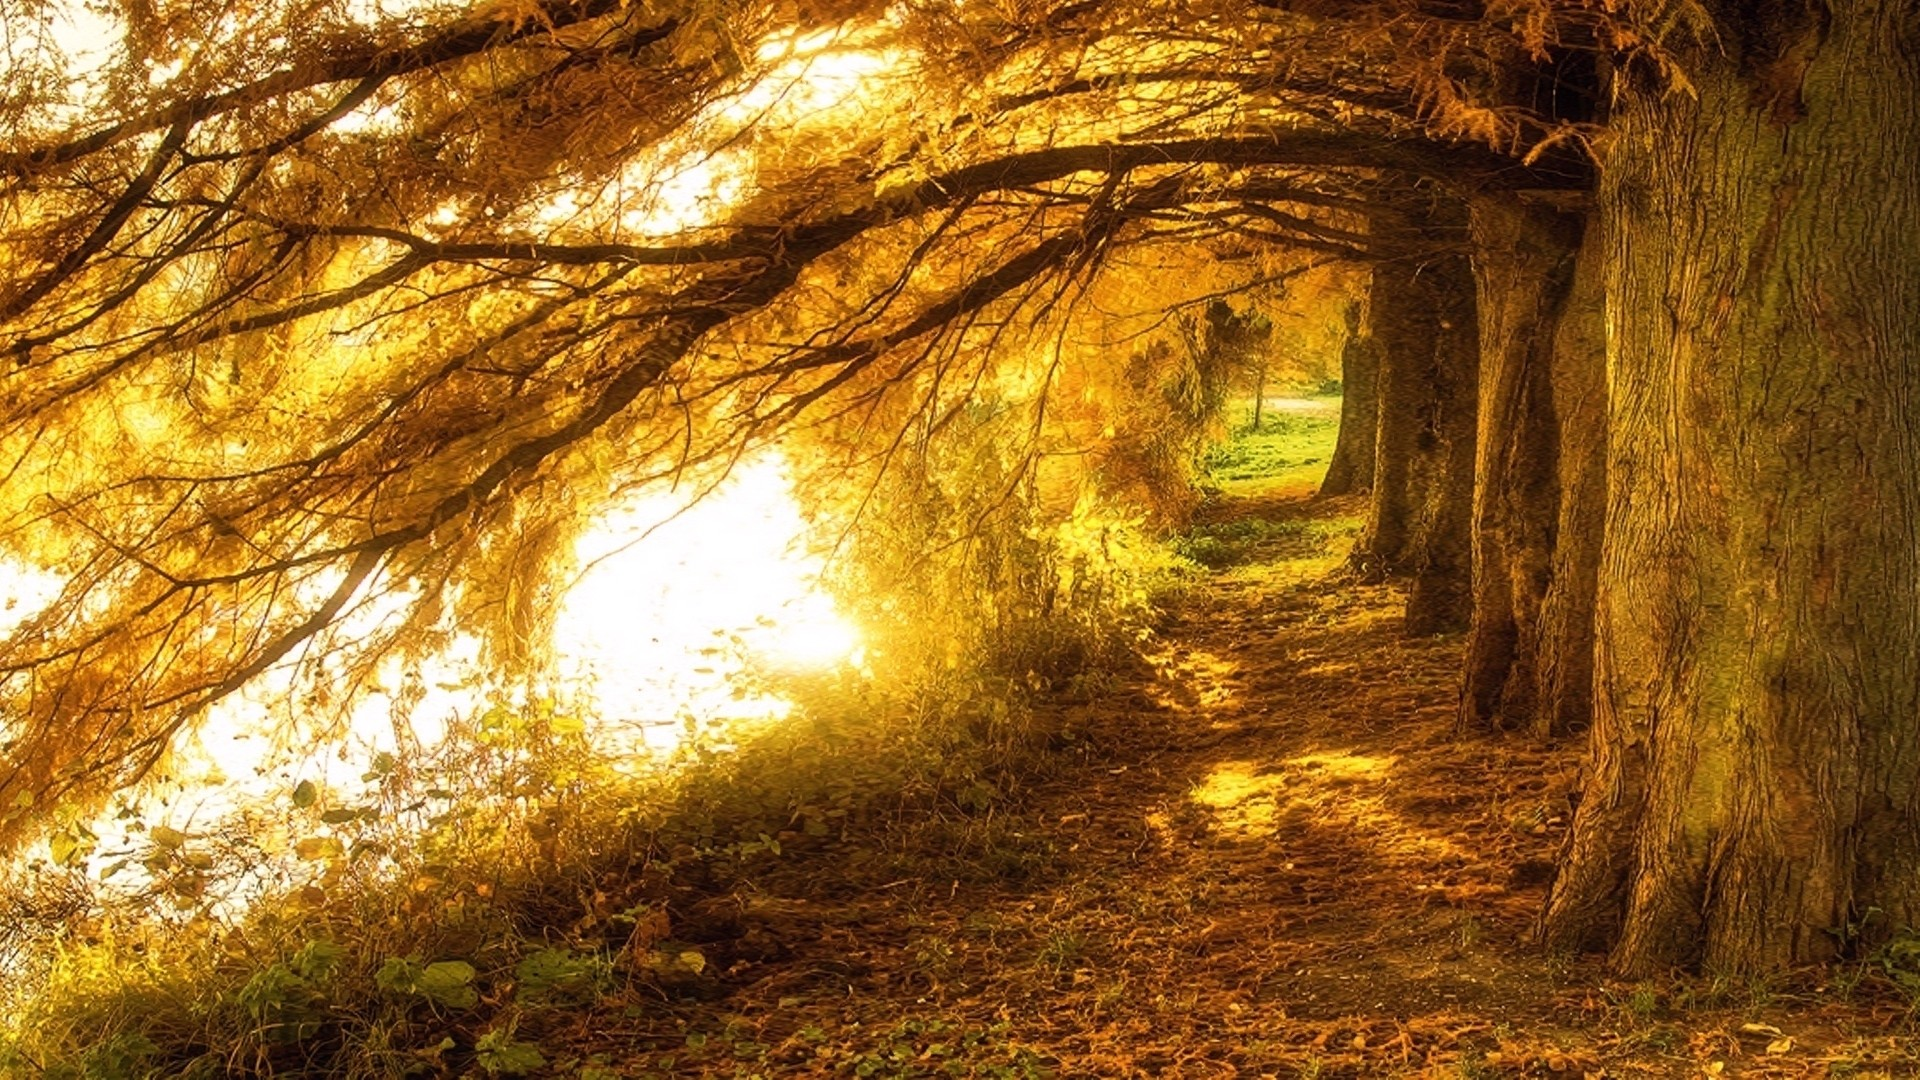 Forests: Beautiful Fall Forest Light Trees Autumn Sunlight Pretty ...